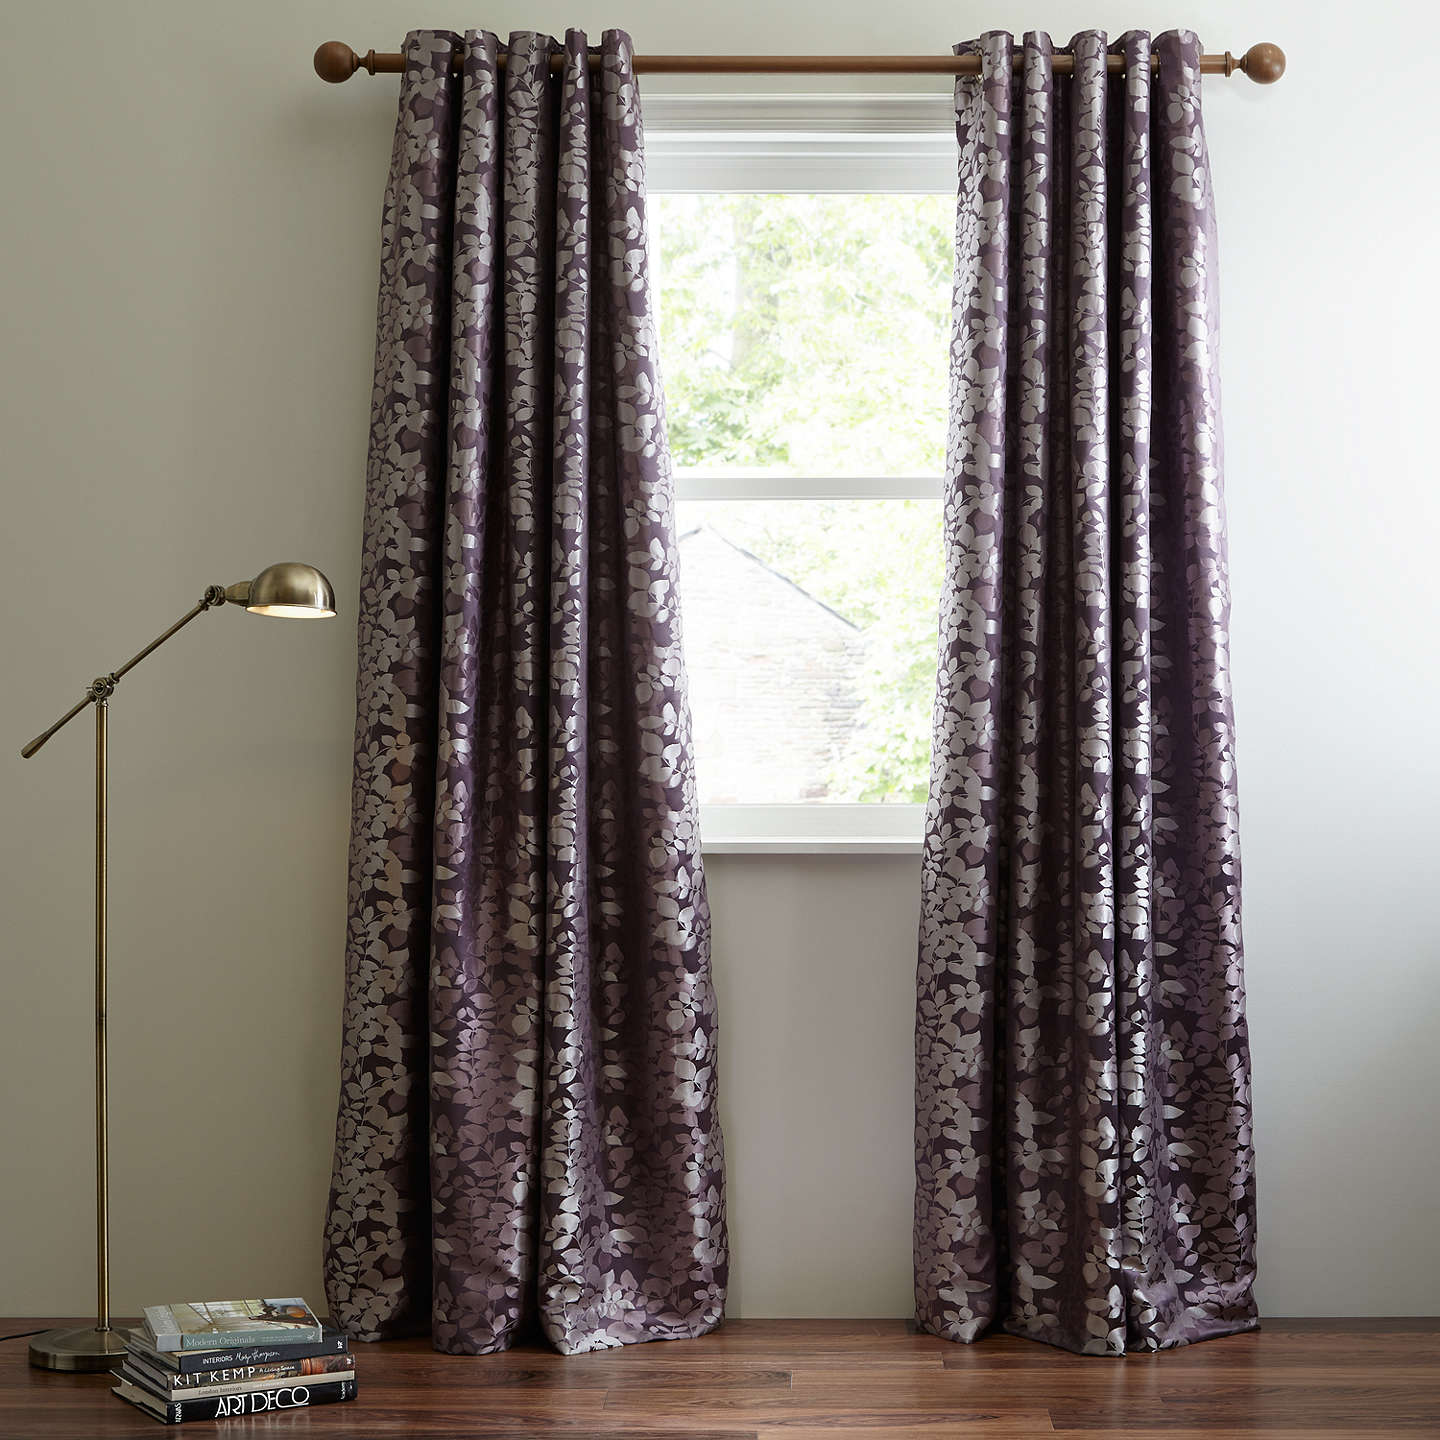 curtains silk velvet century deco valances collectibles cut pair gold for furniture sale antique master goufrage vintage textiles at and of more art